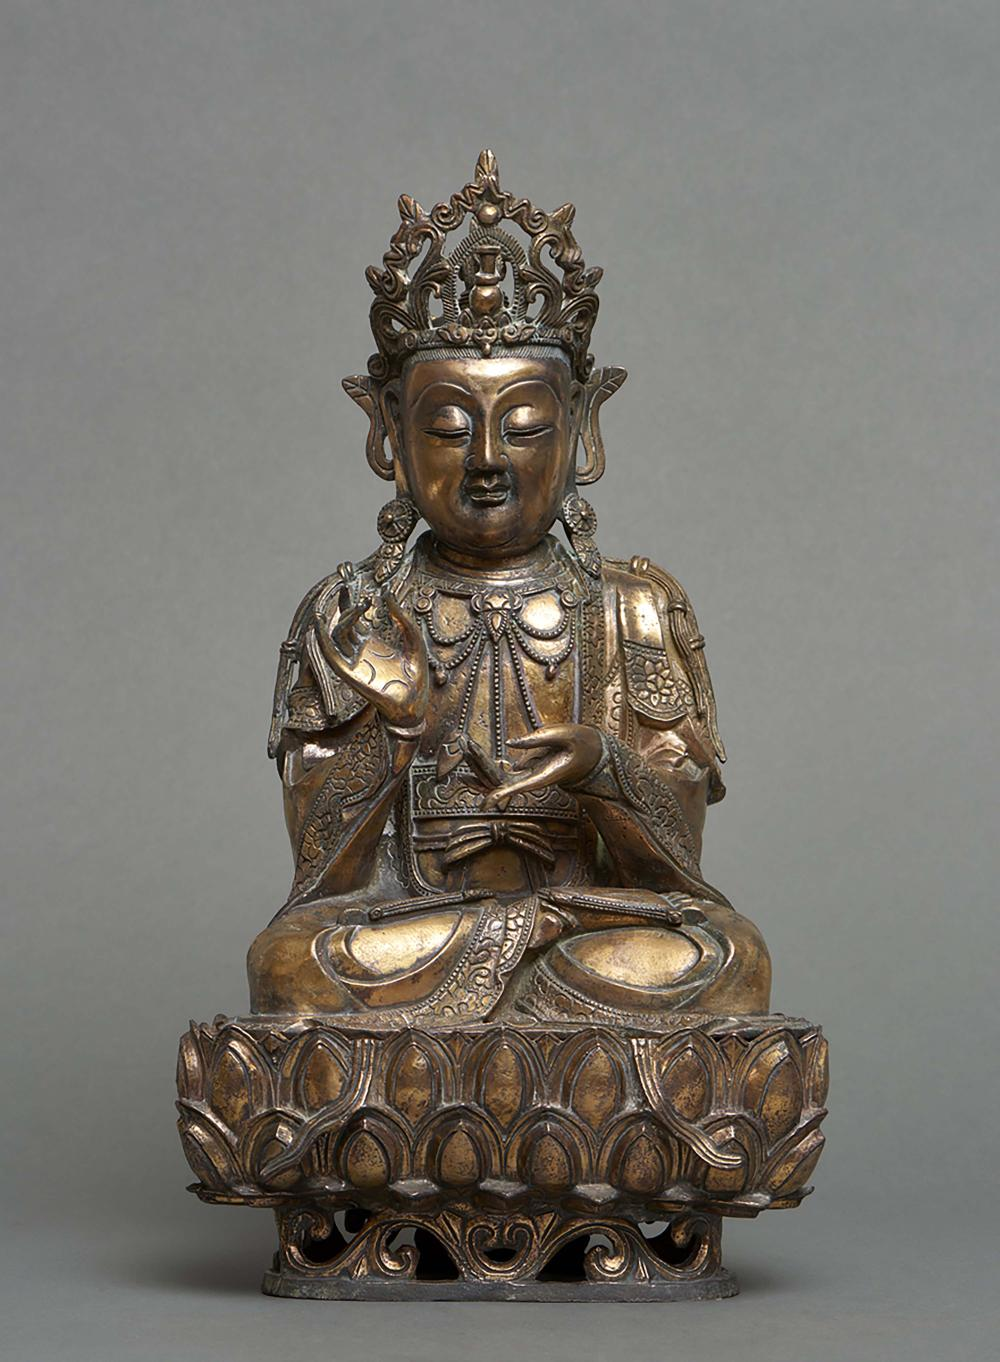 Chinese gilded bronze Buddha, seated on a lotus throne with legs crossed, t